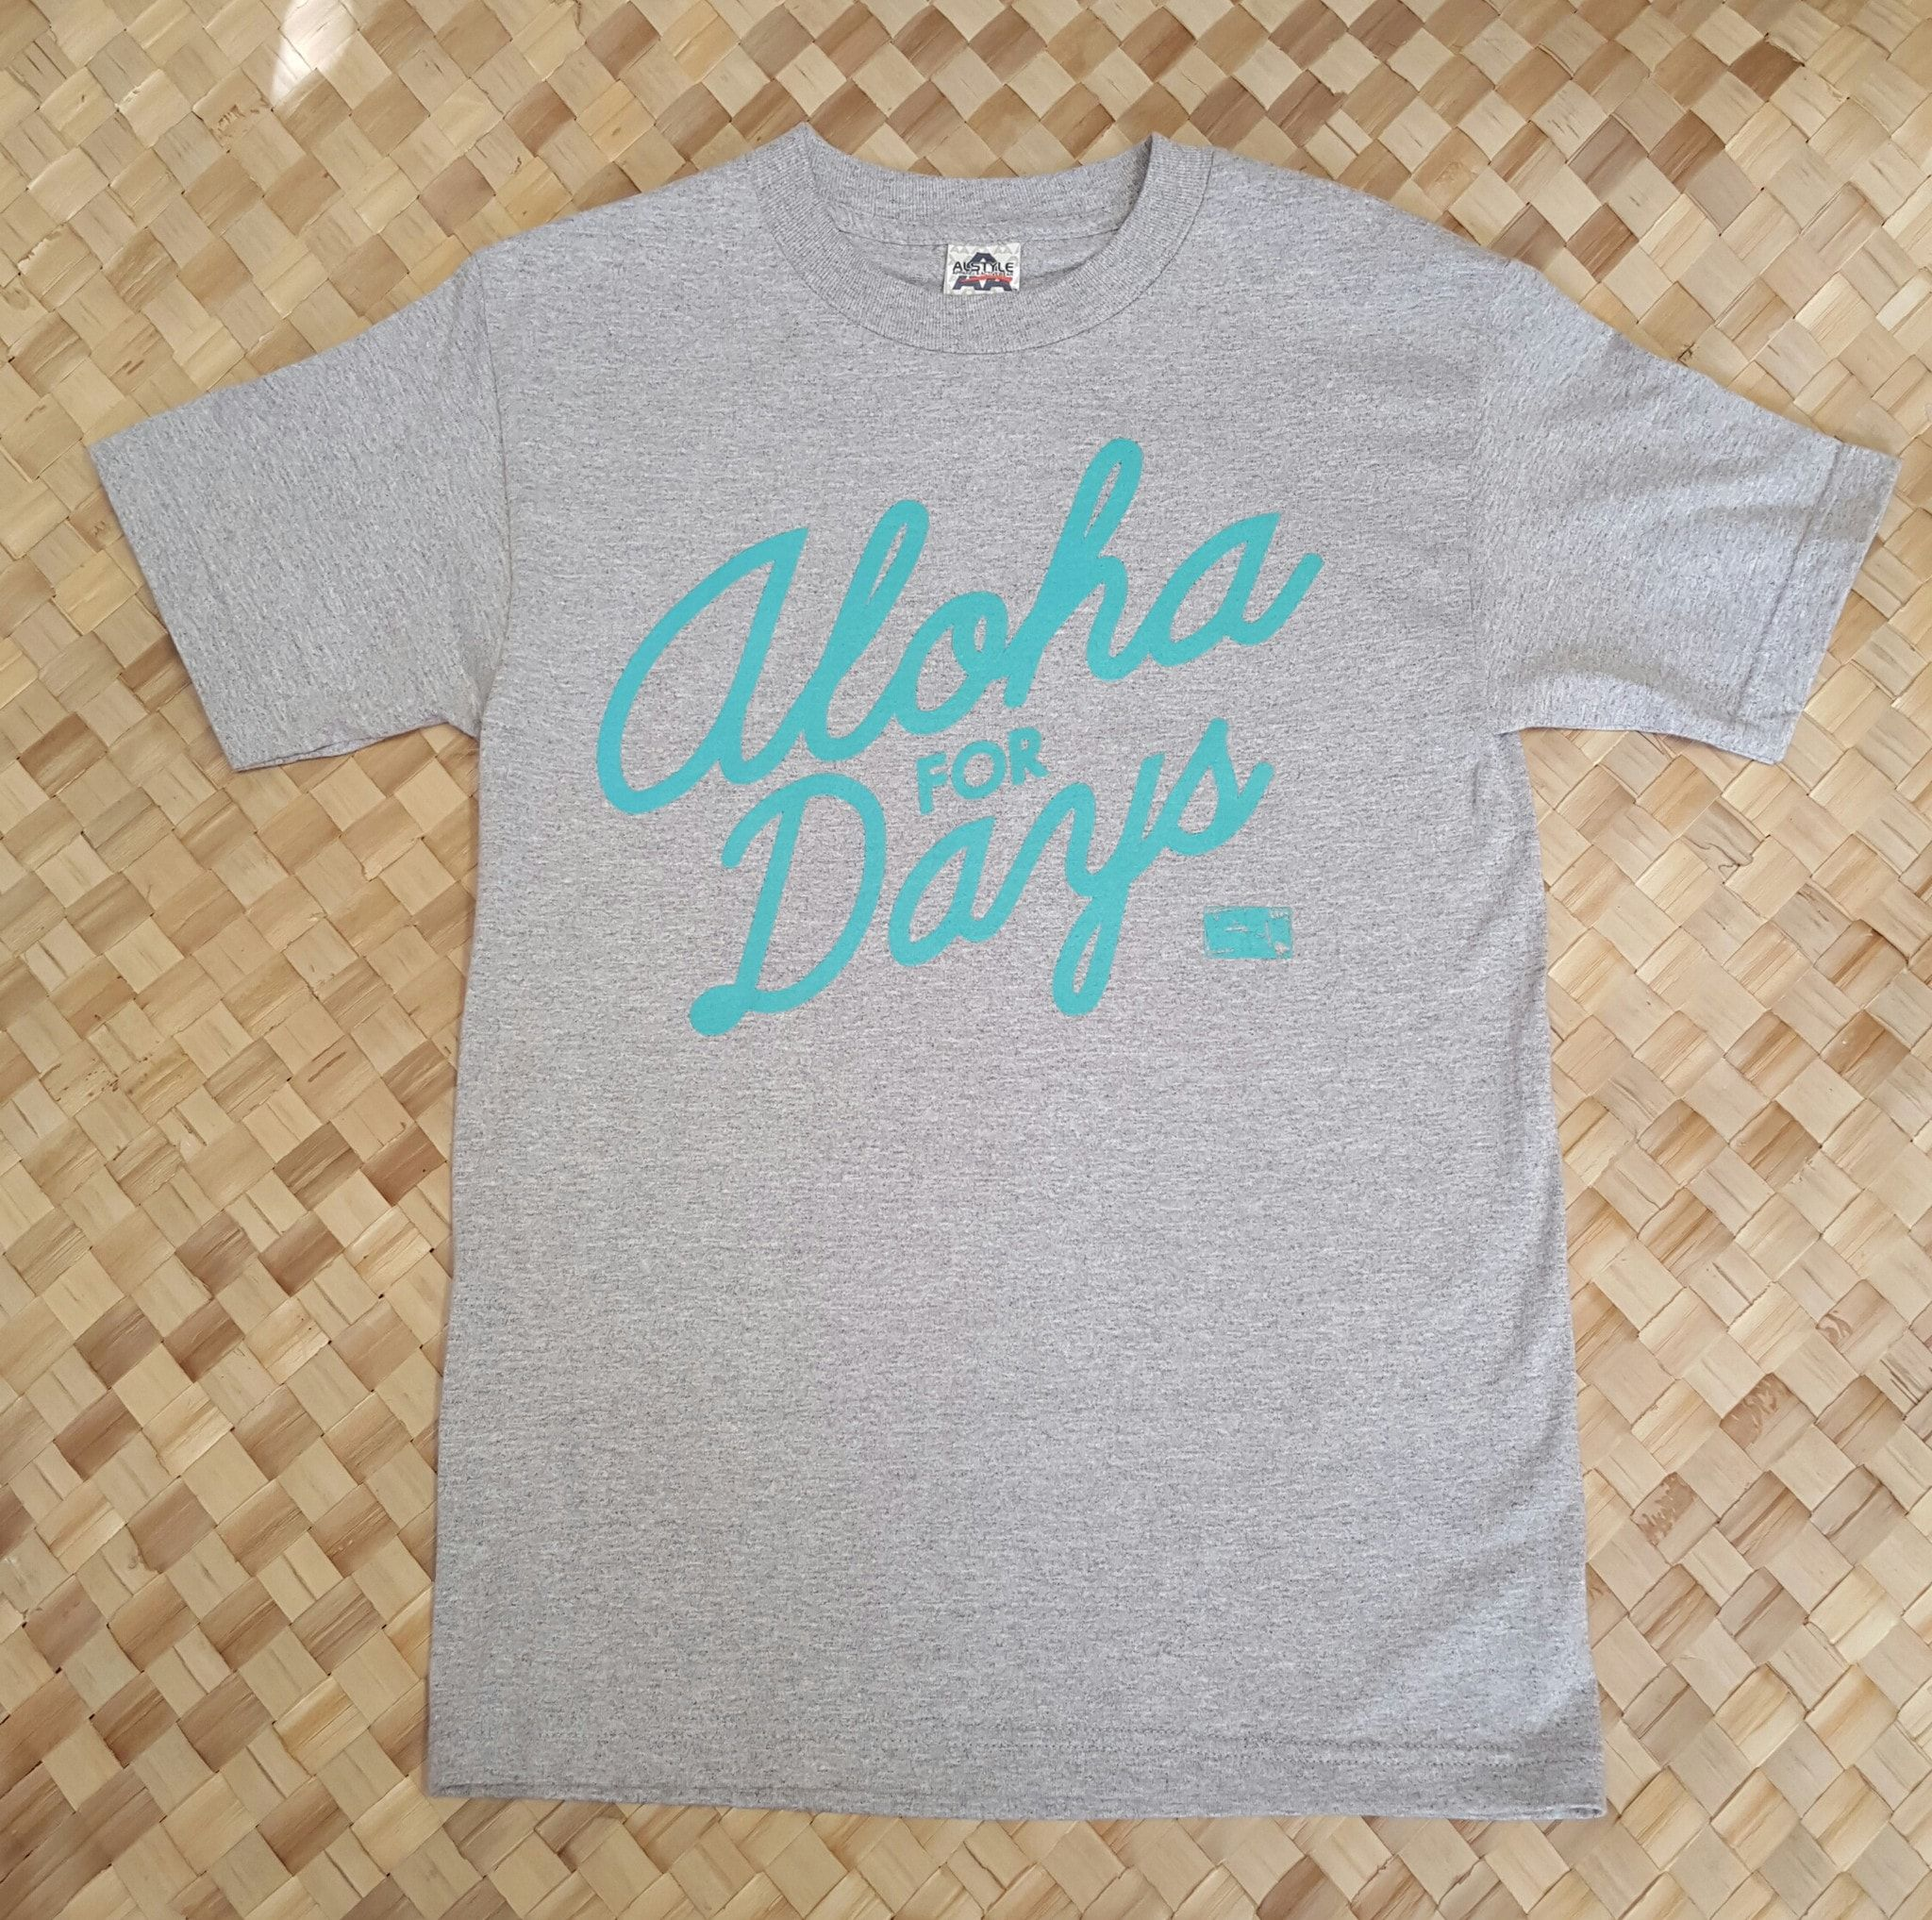 4a391ef43c 50th State of Mind Aloha for Days Mens T-Shirt, Heather Gray ...